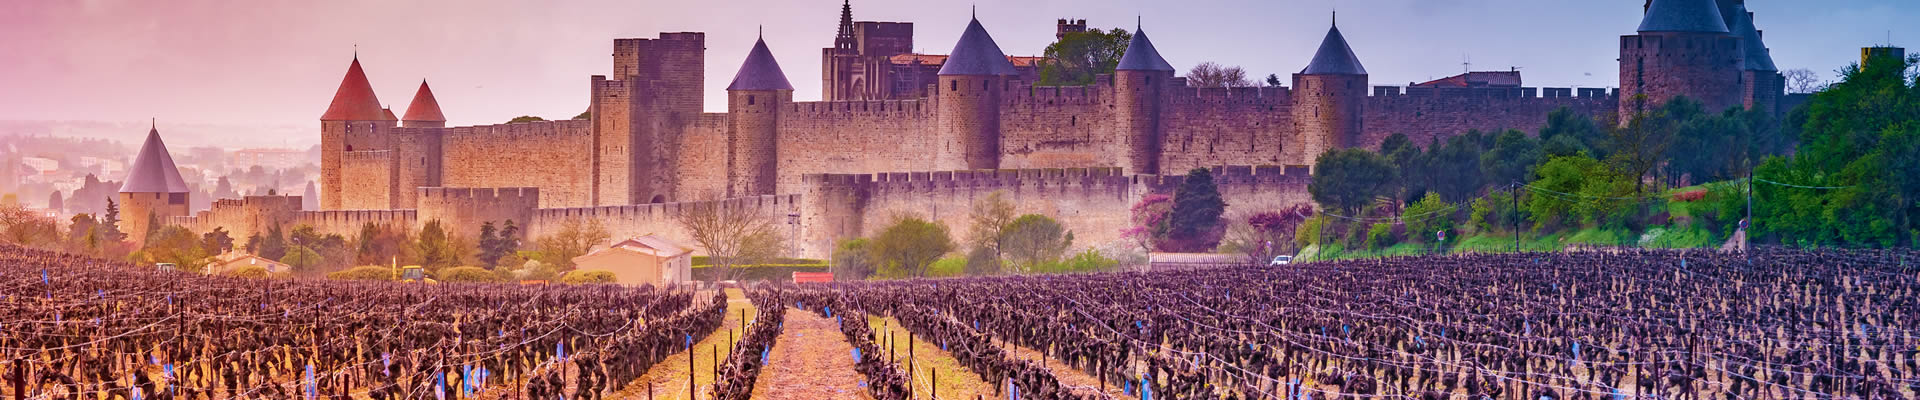 Midieval city of Carcassonne from a vineyard in Languedoc-Roussillon